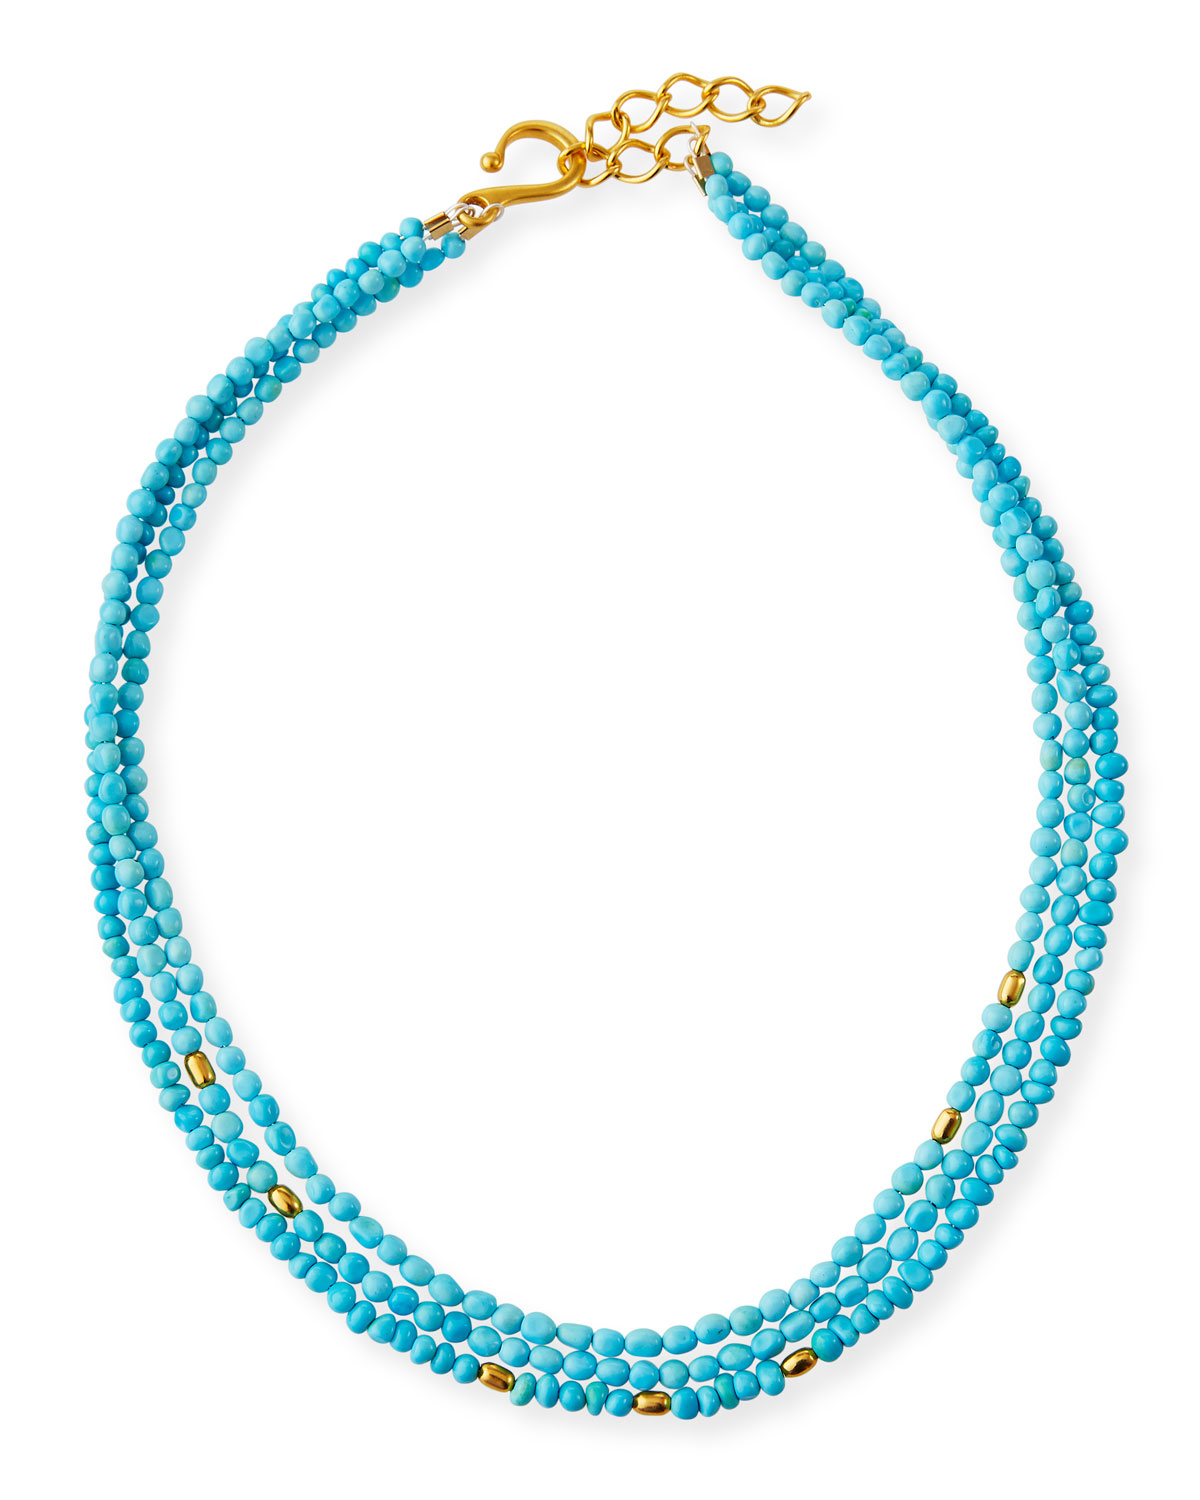 3-Strand Turquoise Necklace